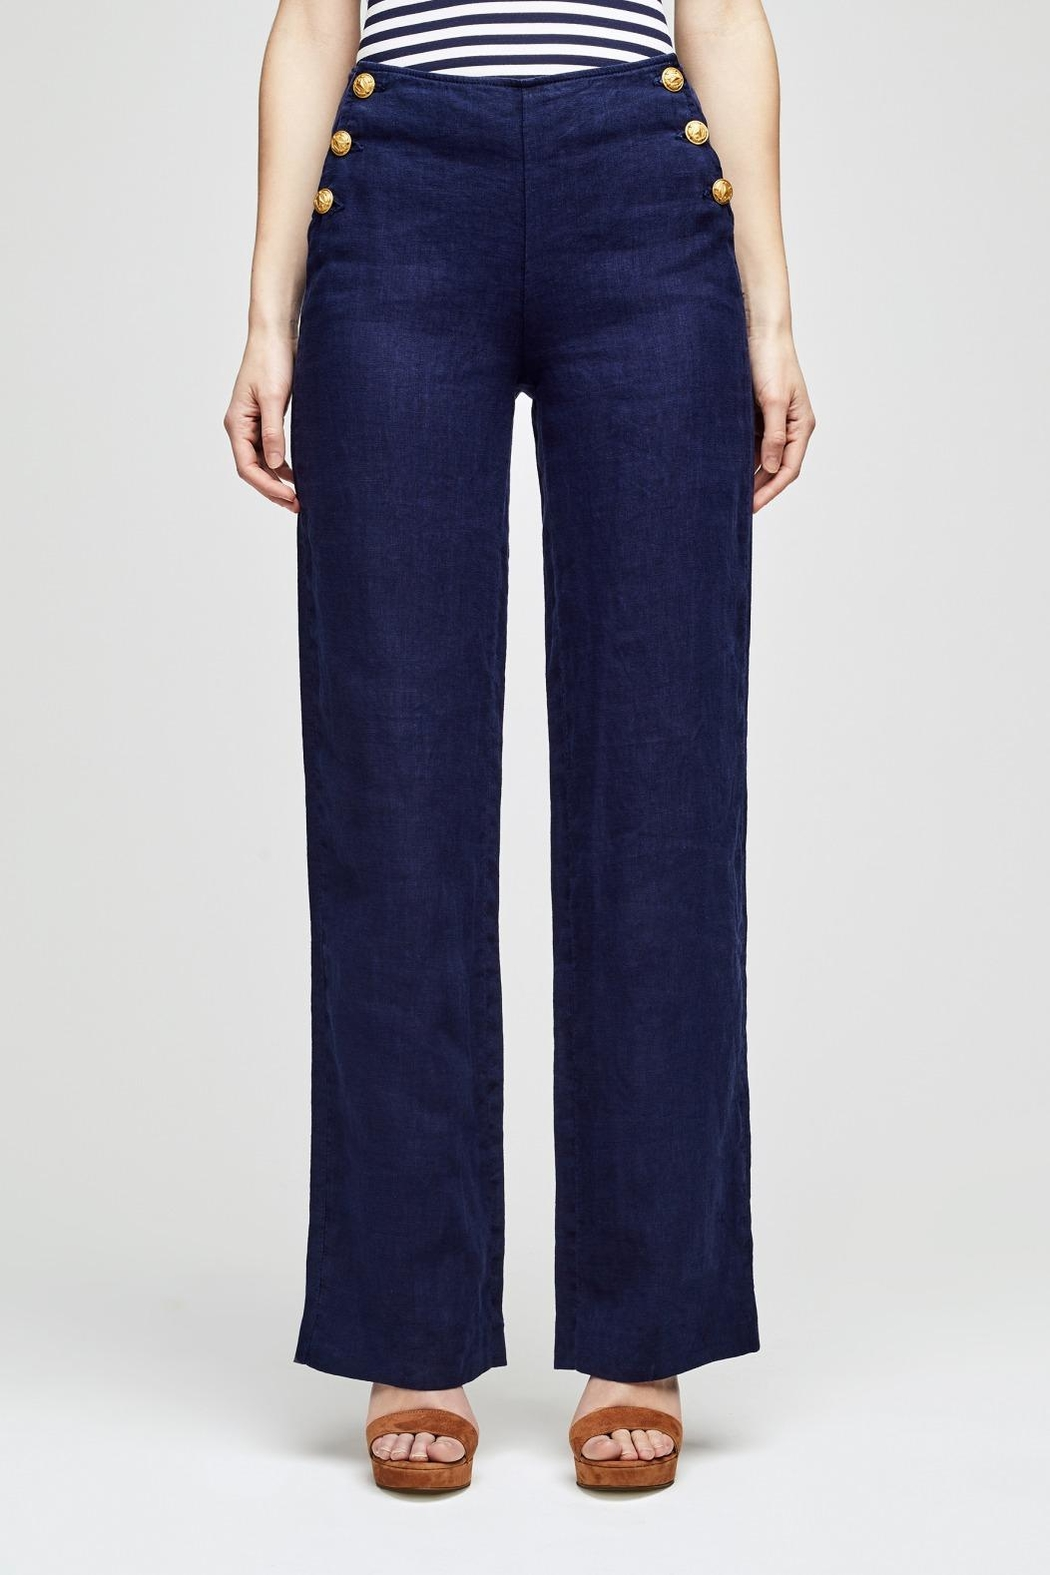 L'Agence Dee Sailor Pant - Front Cropped Image